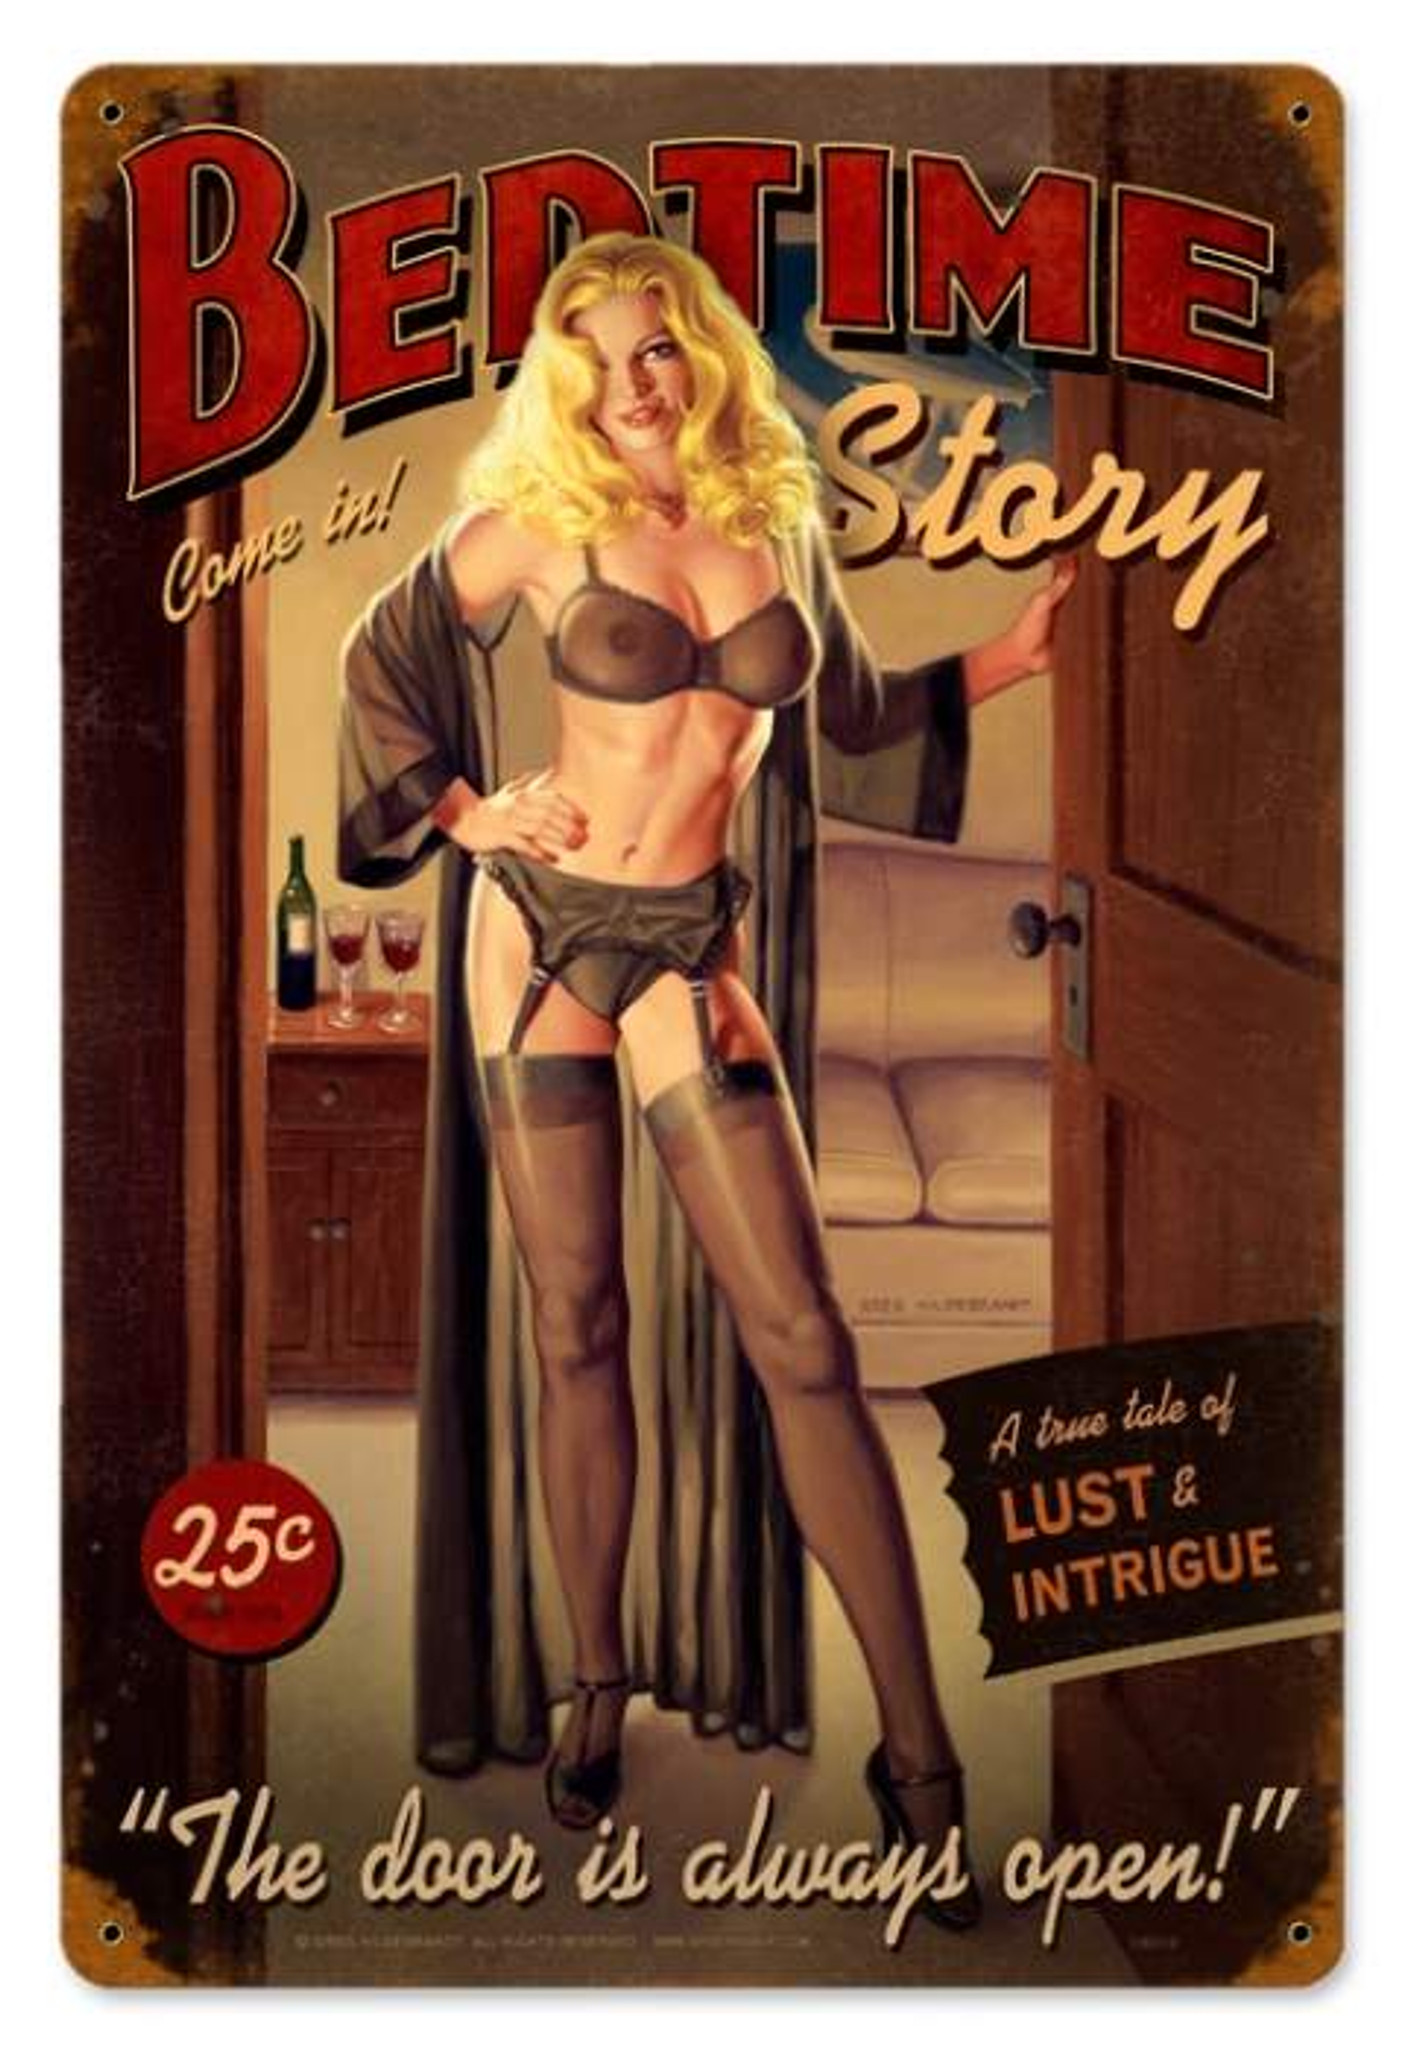 VINTAGE STYLE METAL SIGN Pinup Girl  Bedtime Story  12 x 18